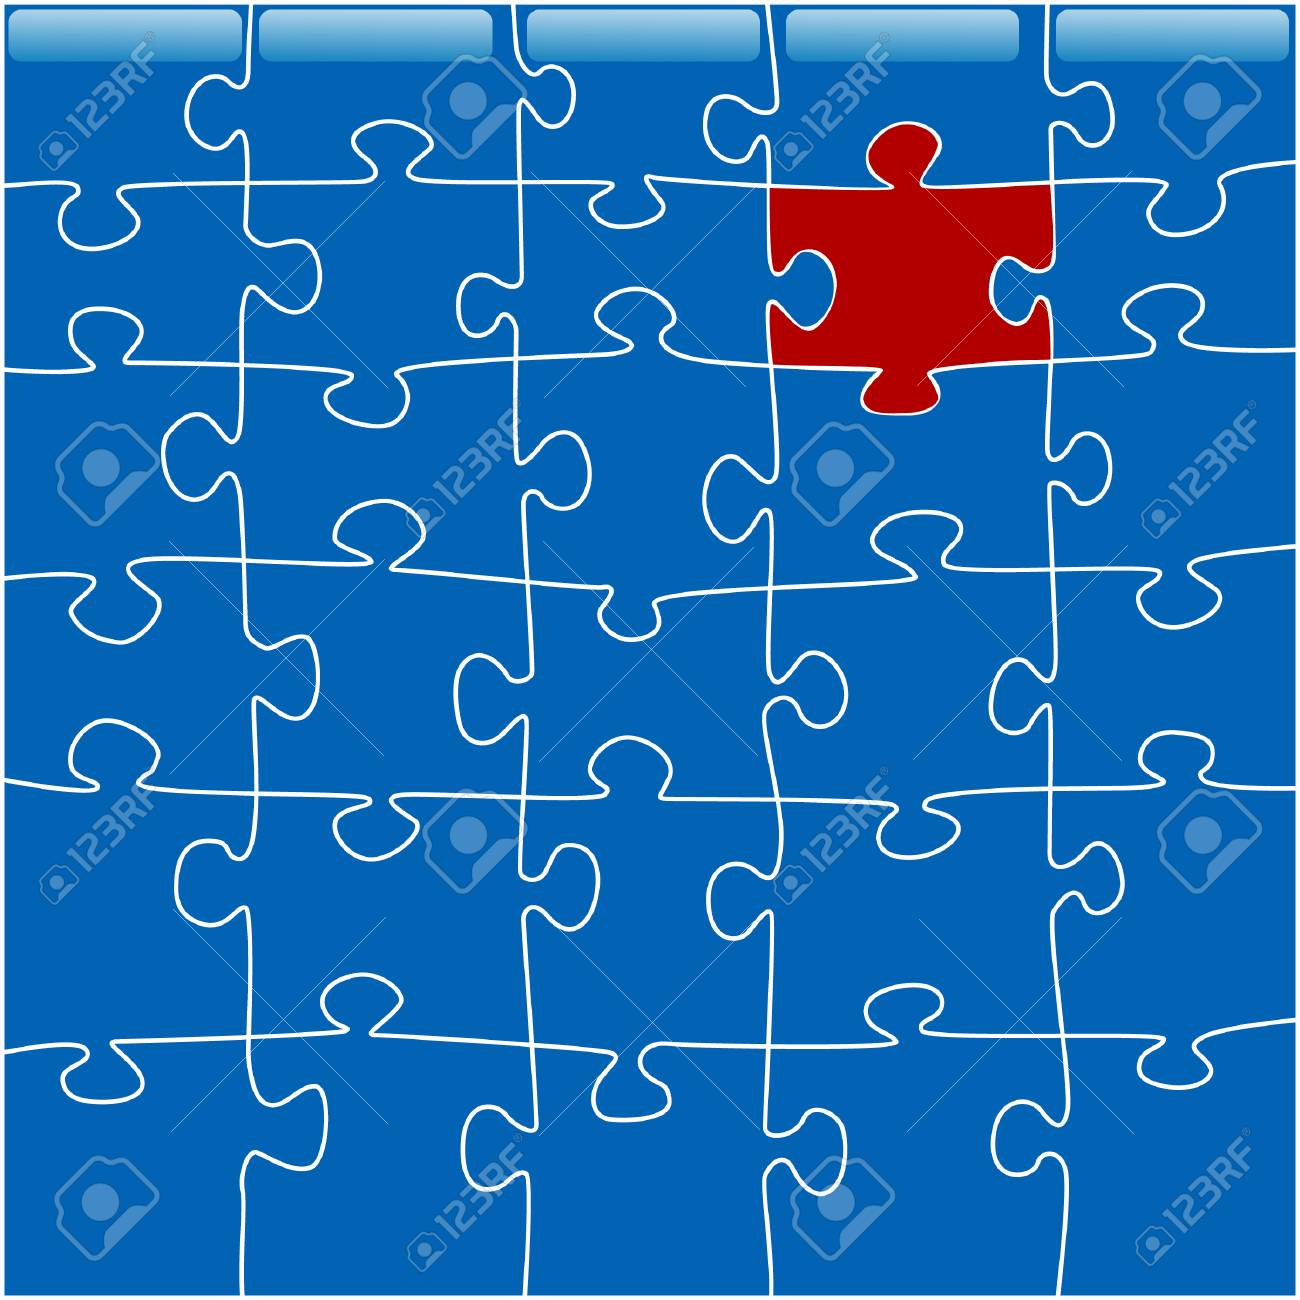 conceptual image of a zigzaw puzzle Stock Vector - 5514617